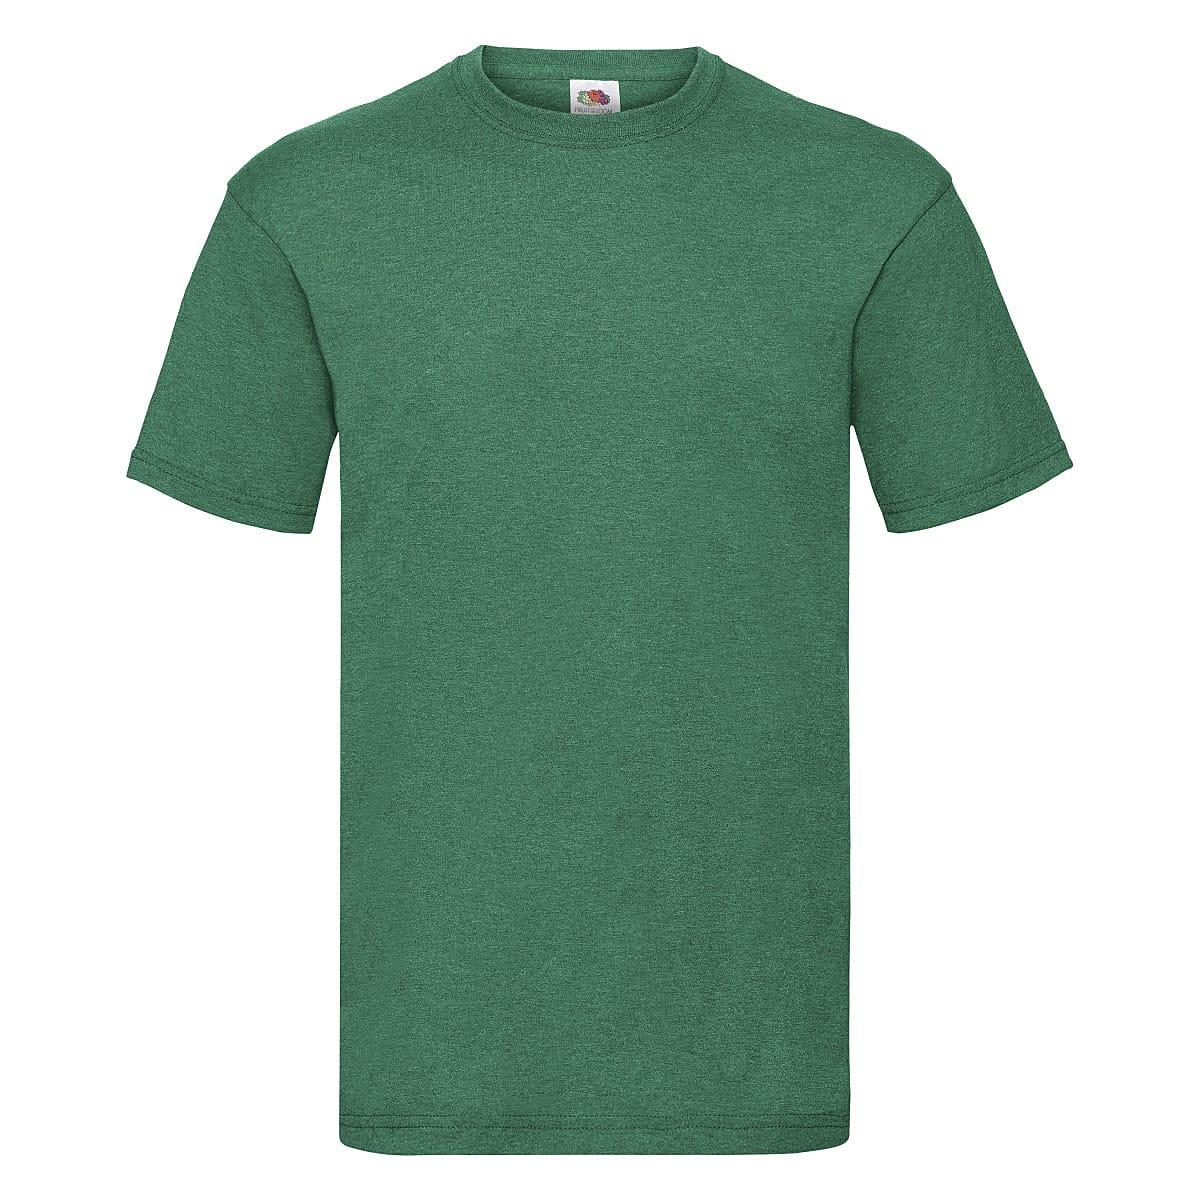 Fruit Of The Loom Valueweight T-Shirt in Retro Heather Green (Product Code: 61036)